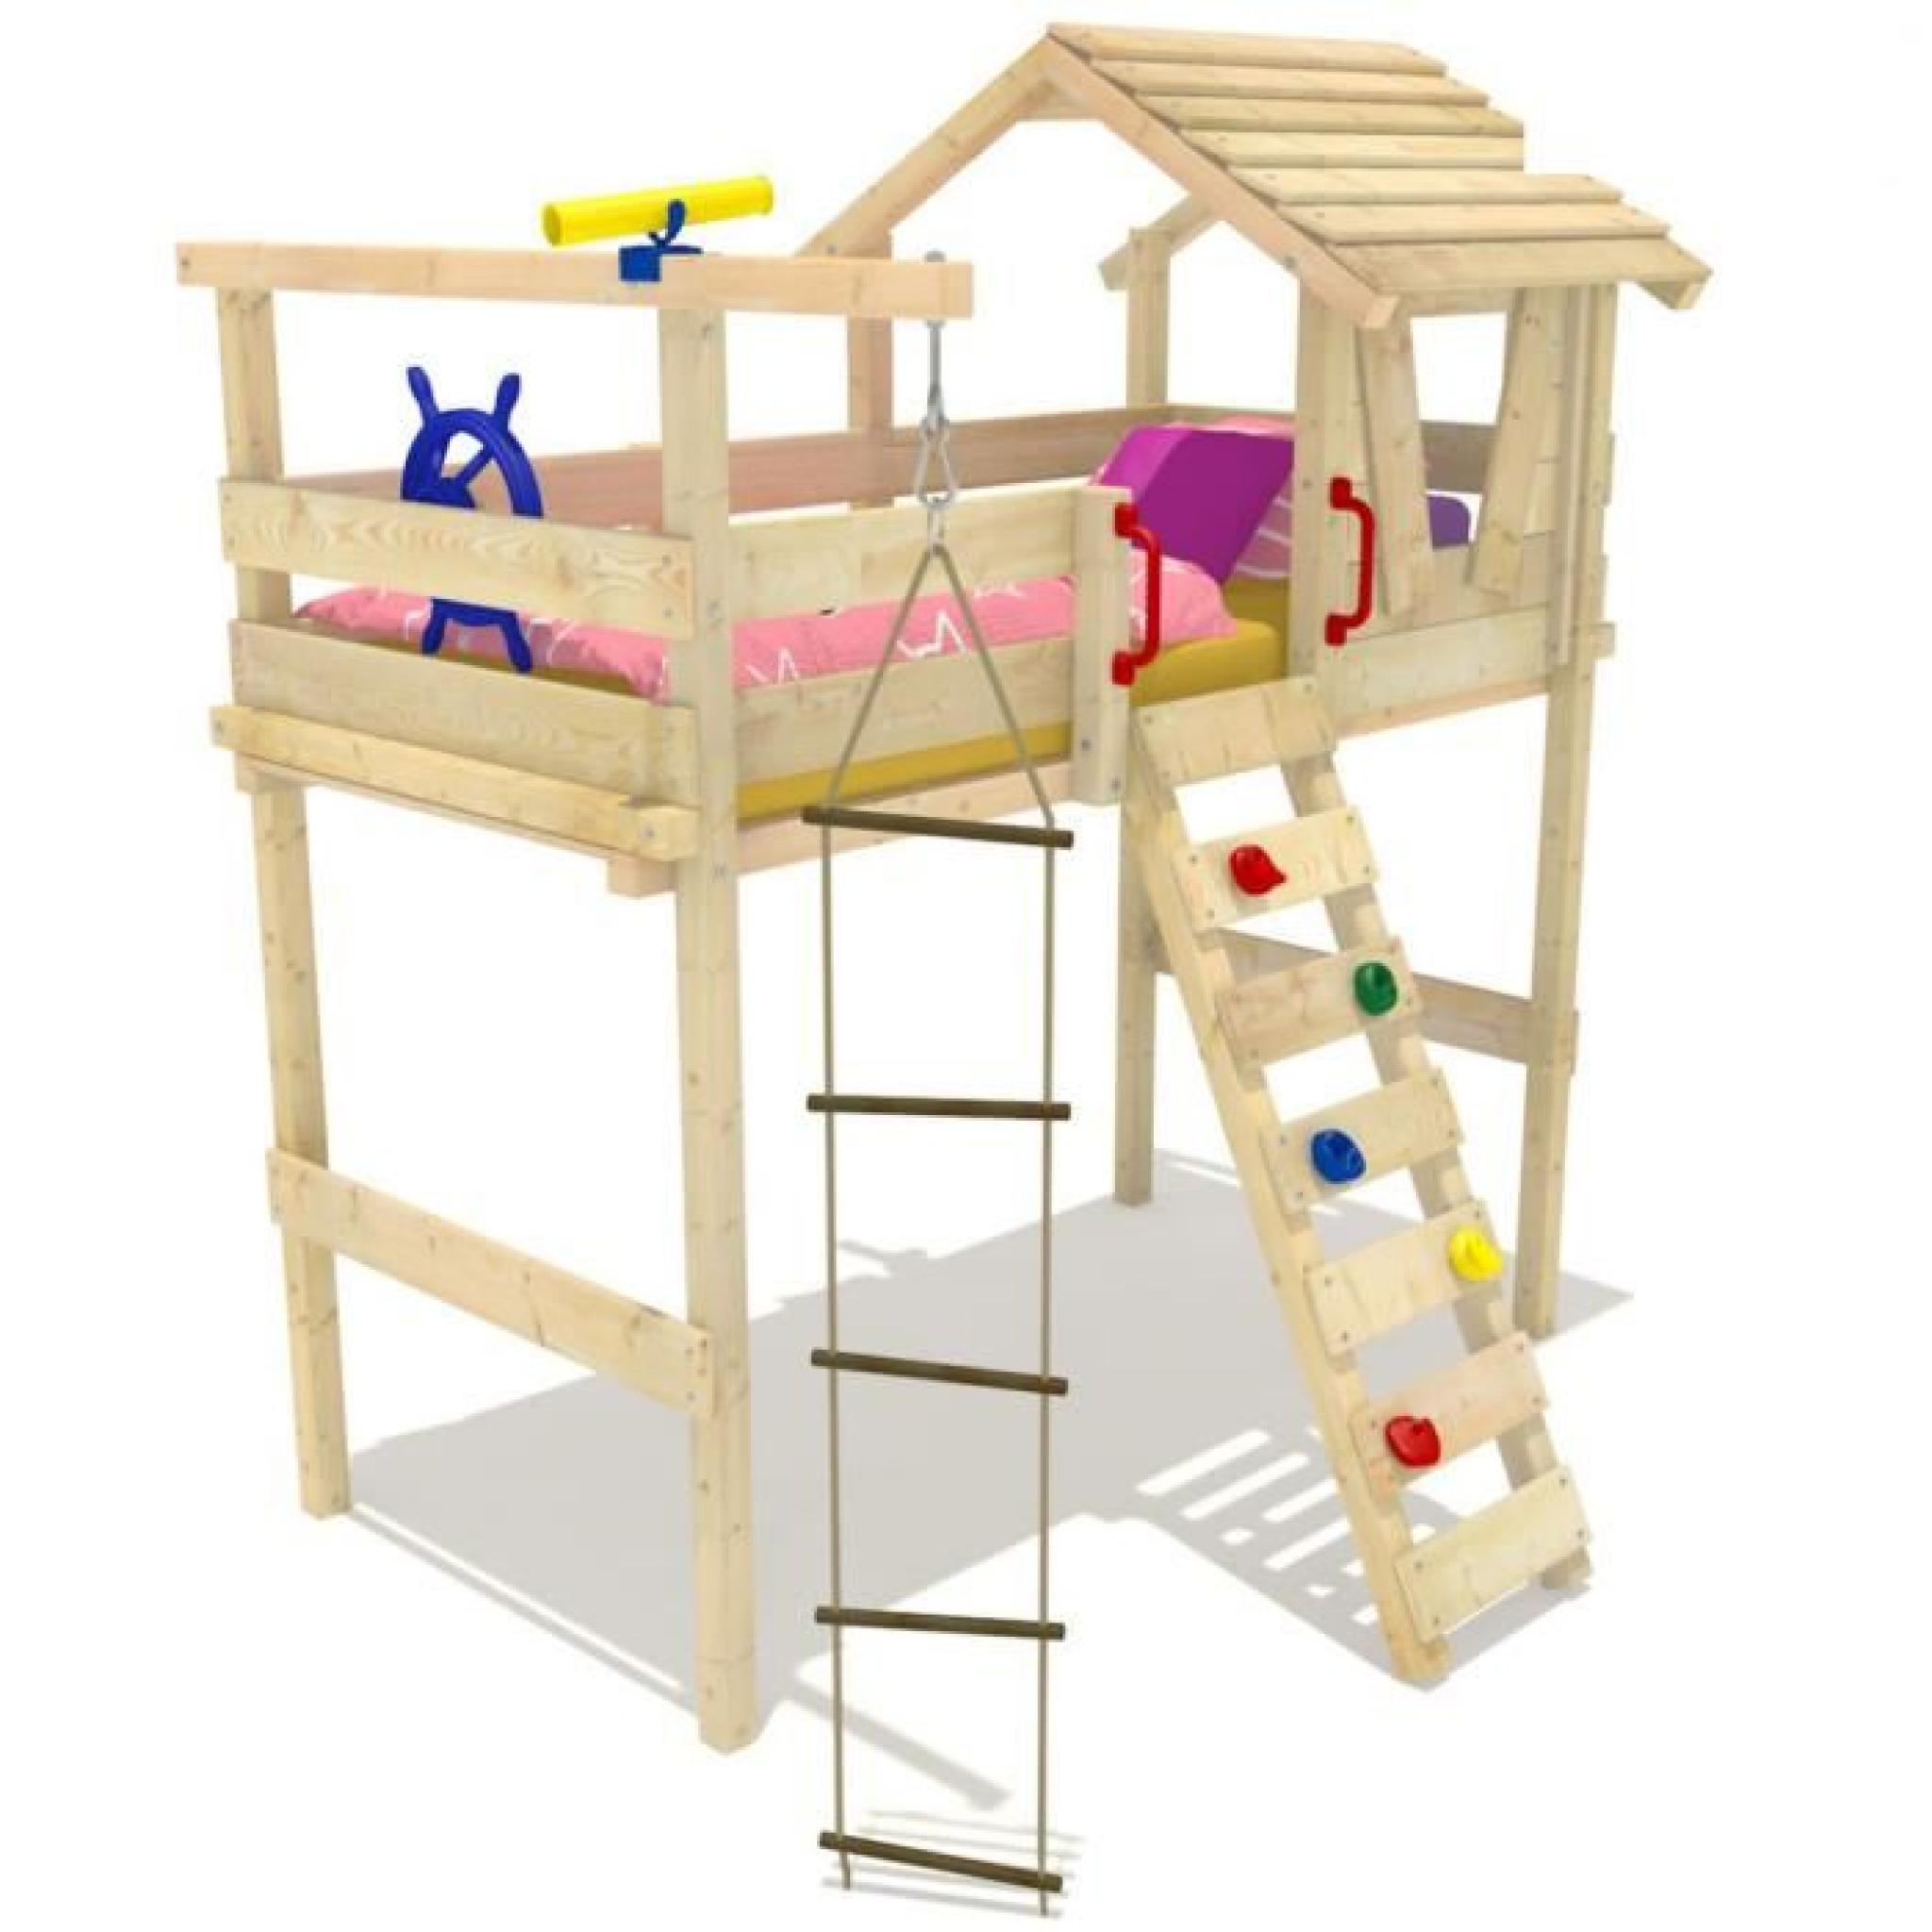 WICKEY lit enfant mezzanine Jungle Hut pas cher